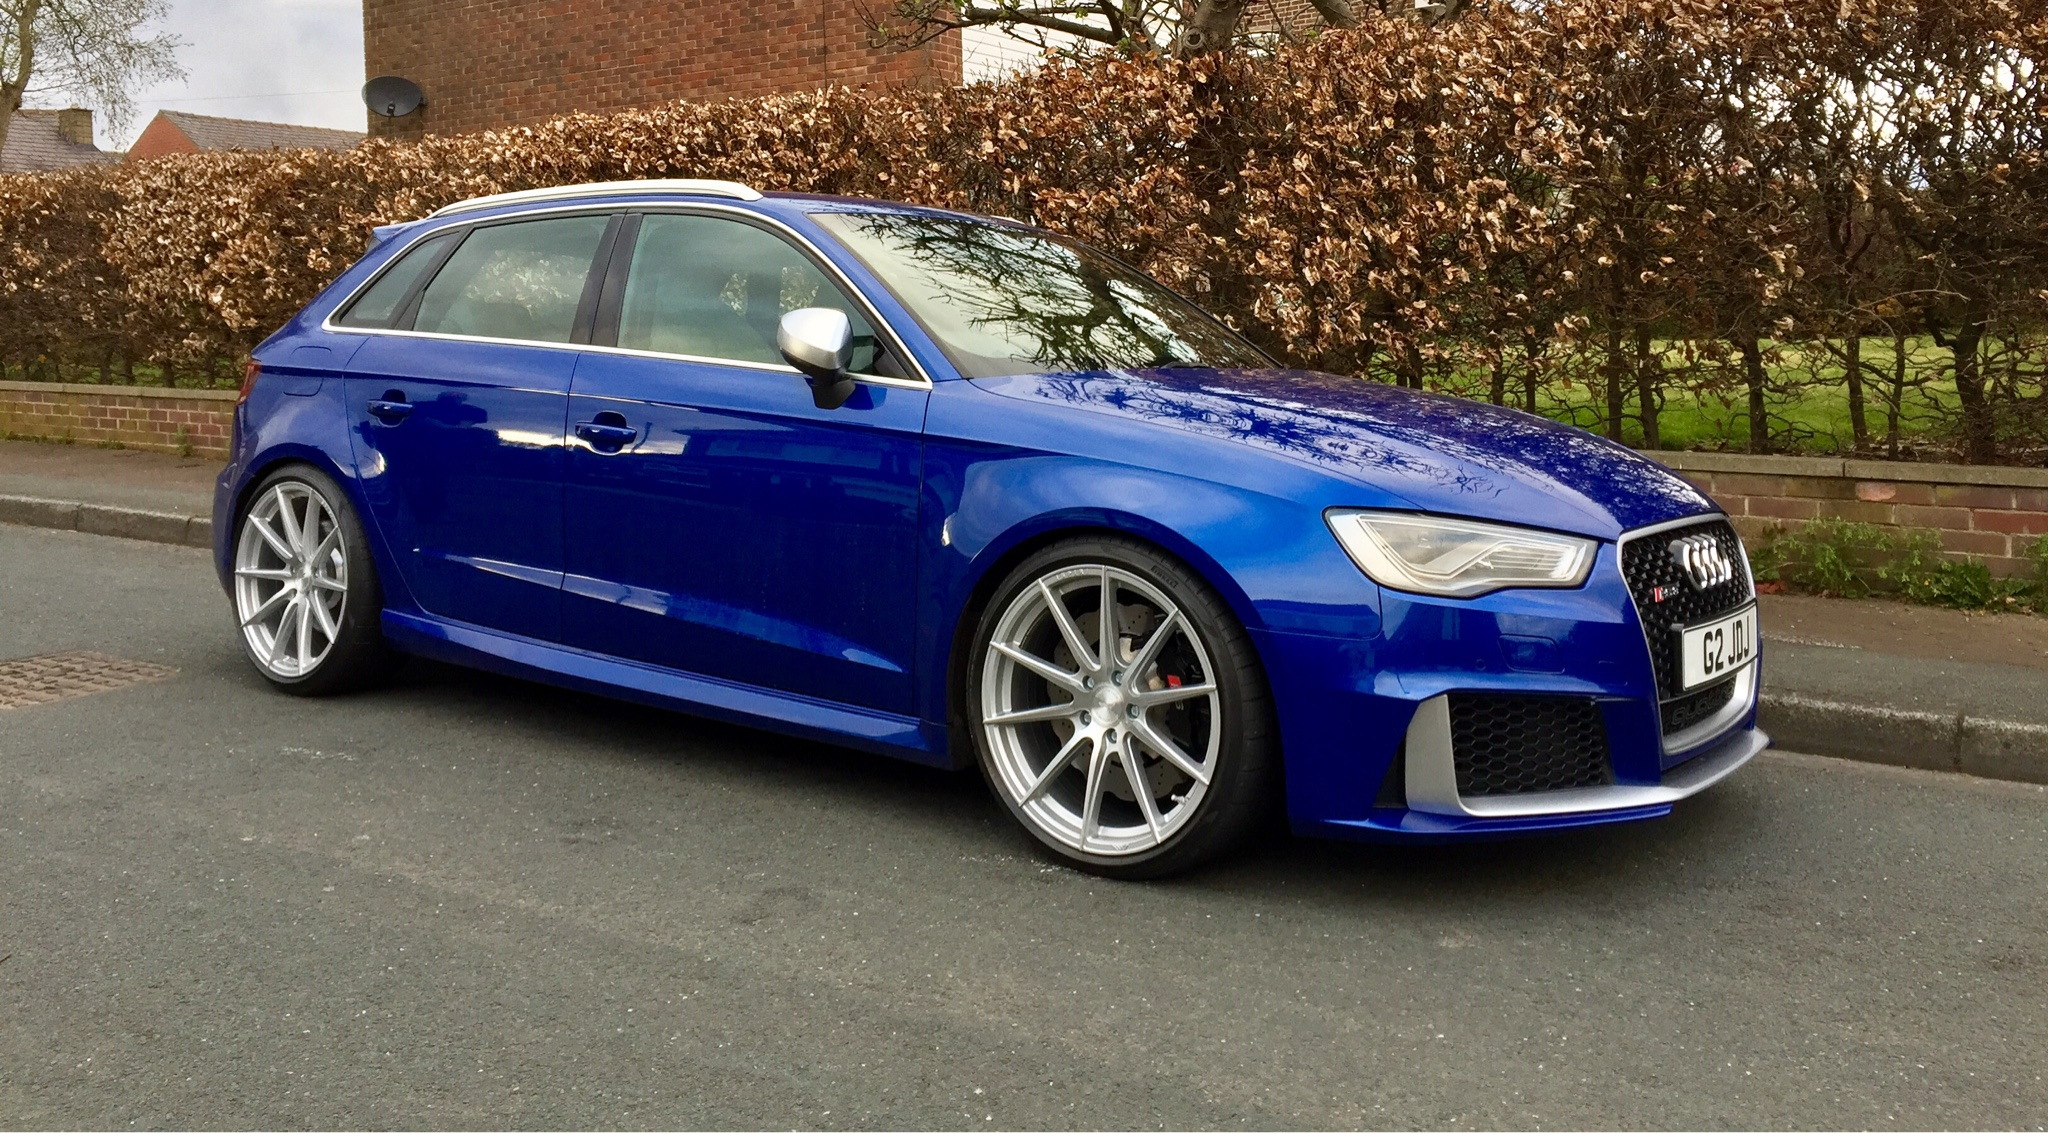 Ispiri Ffr1 Wheels 19x8 5j Et42 On Rs3 8v Tuning And Modifications Official Audi Rs3 Owners